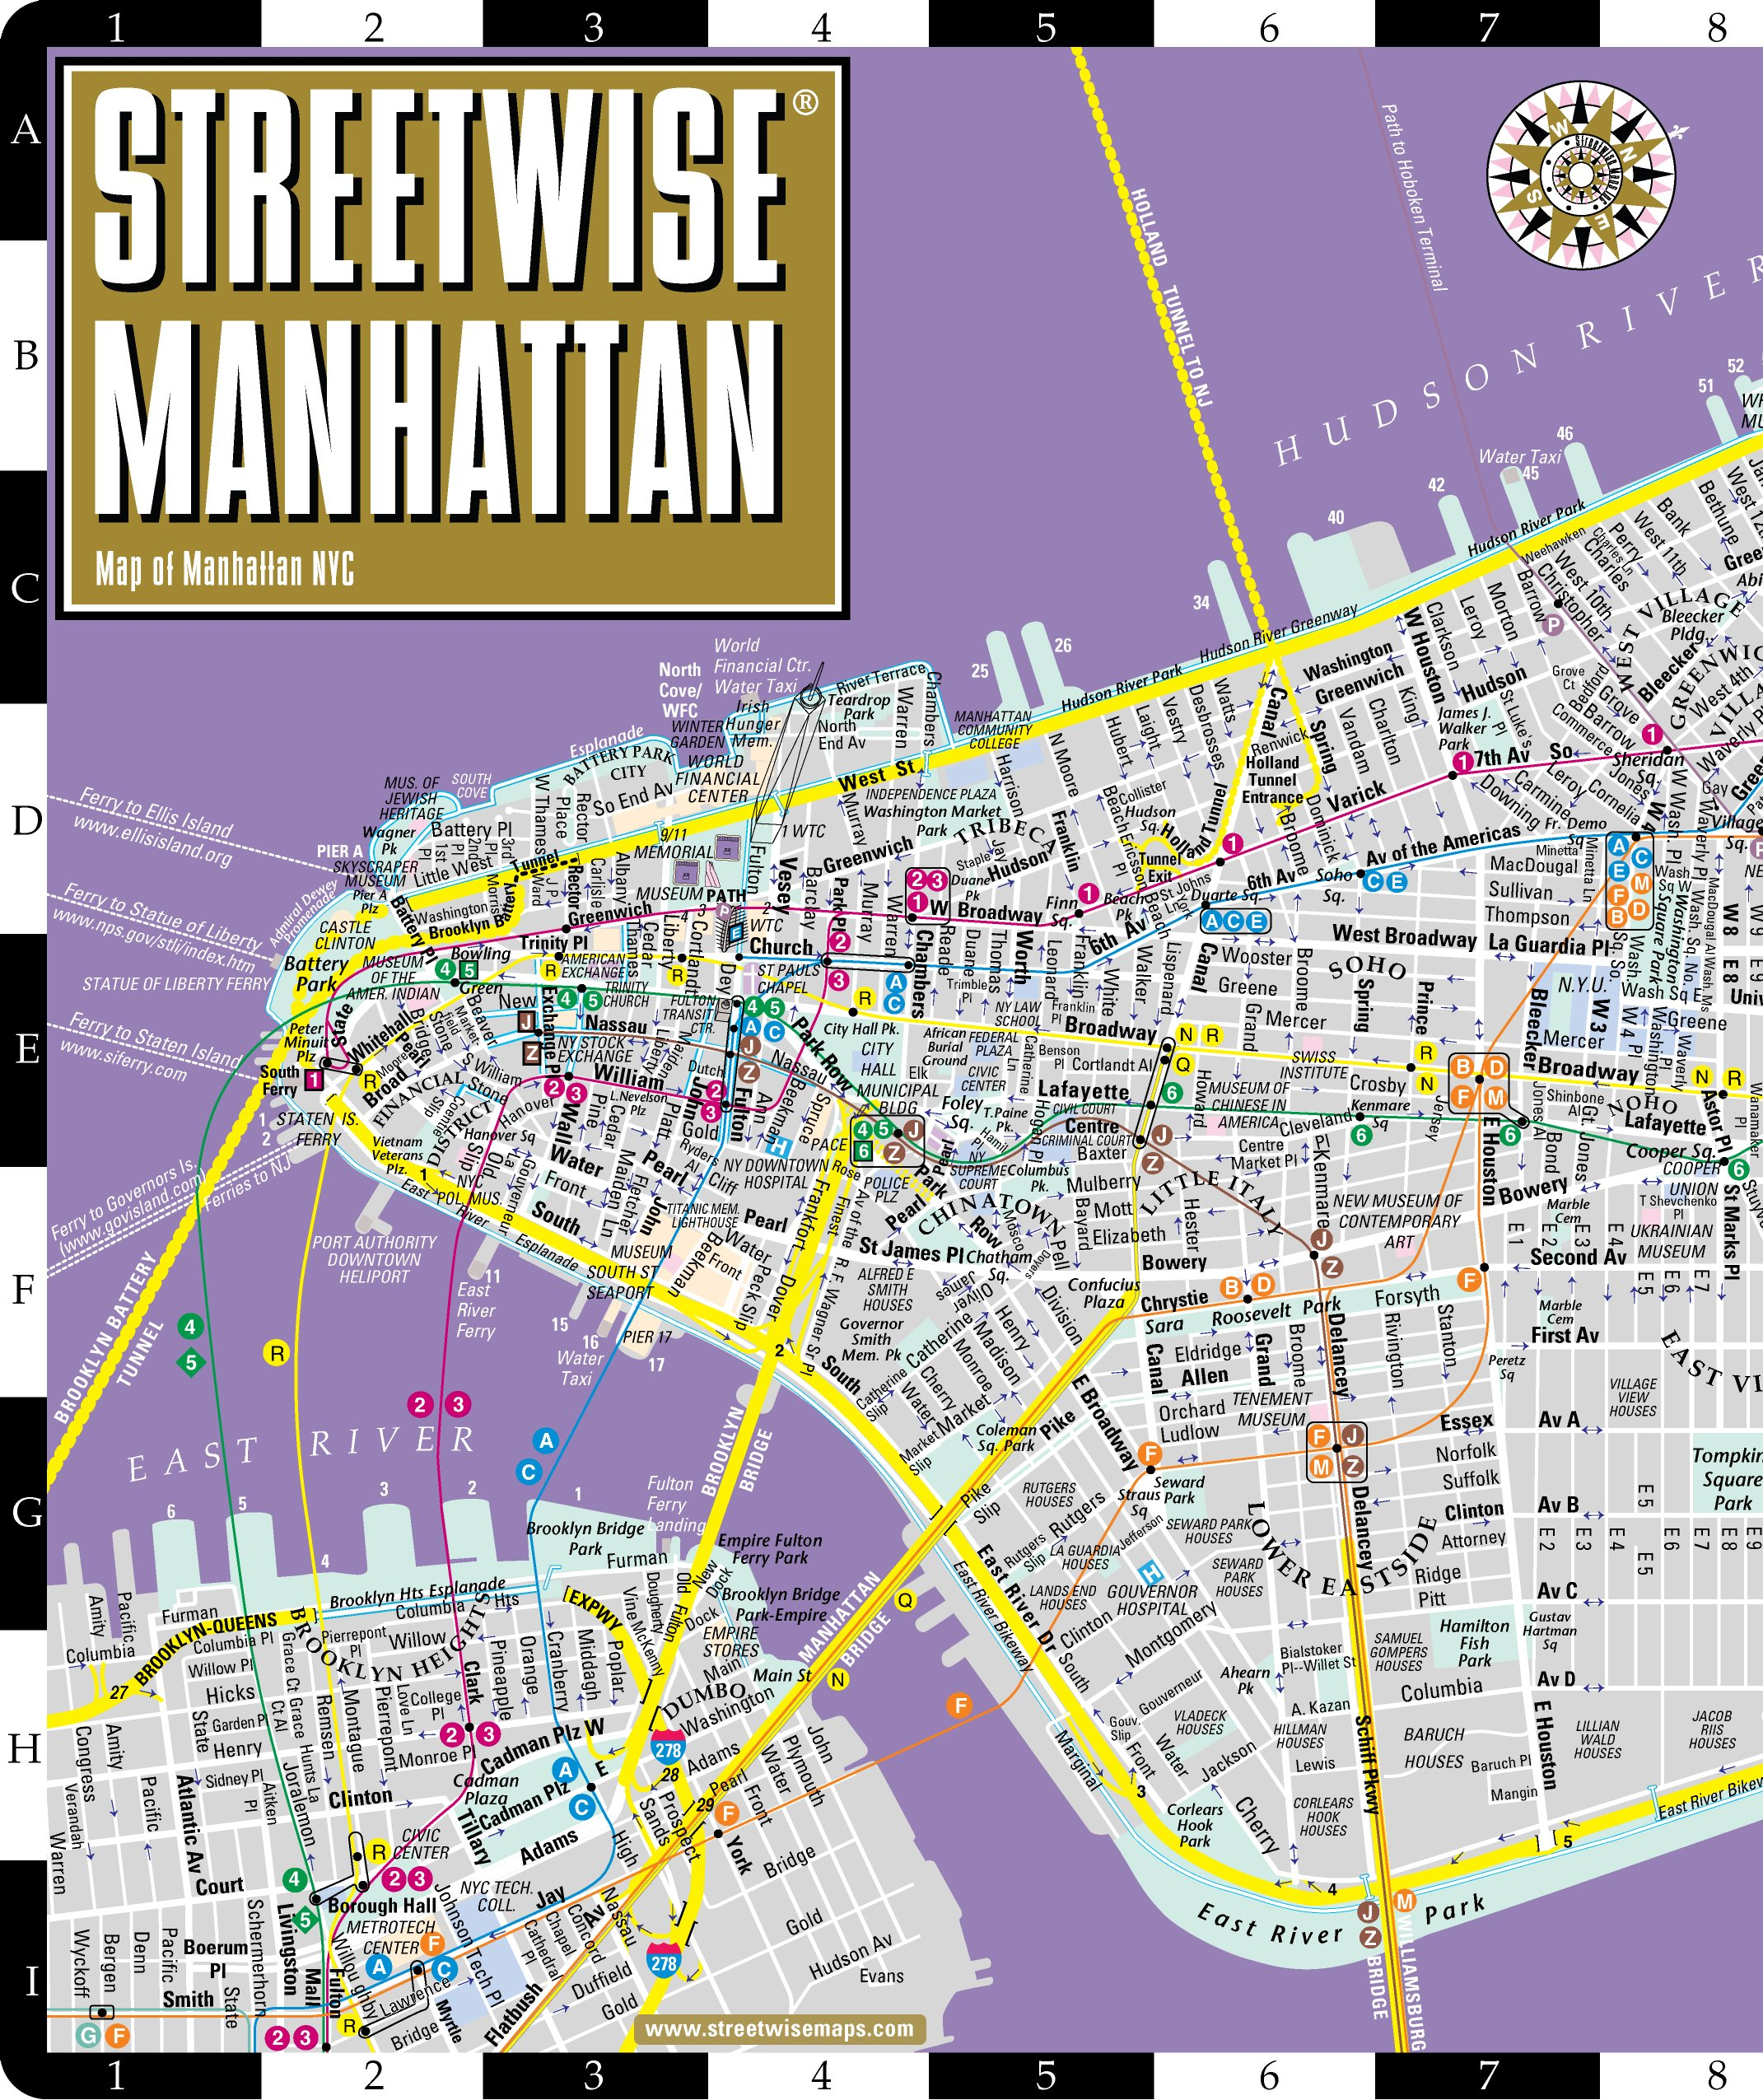 Dc Subway Map With Streets.Streetwise Manhattan Map Laminated City Street Map Of Manhattan